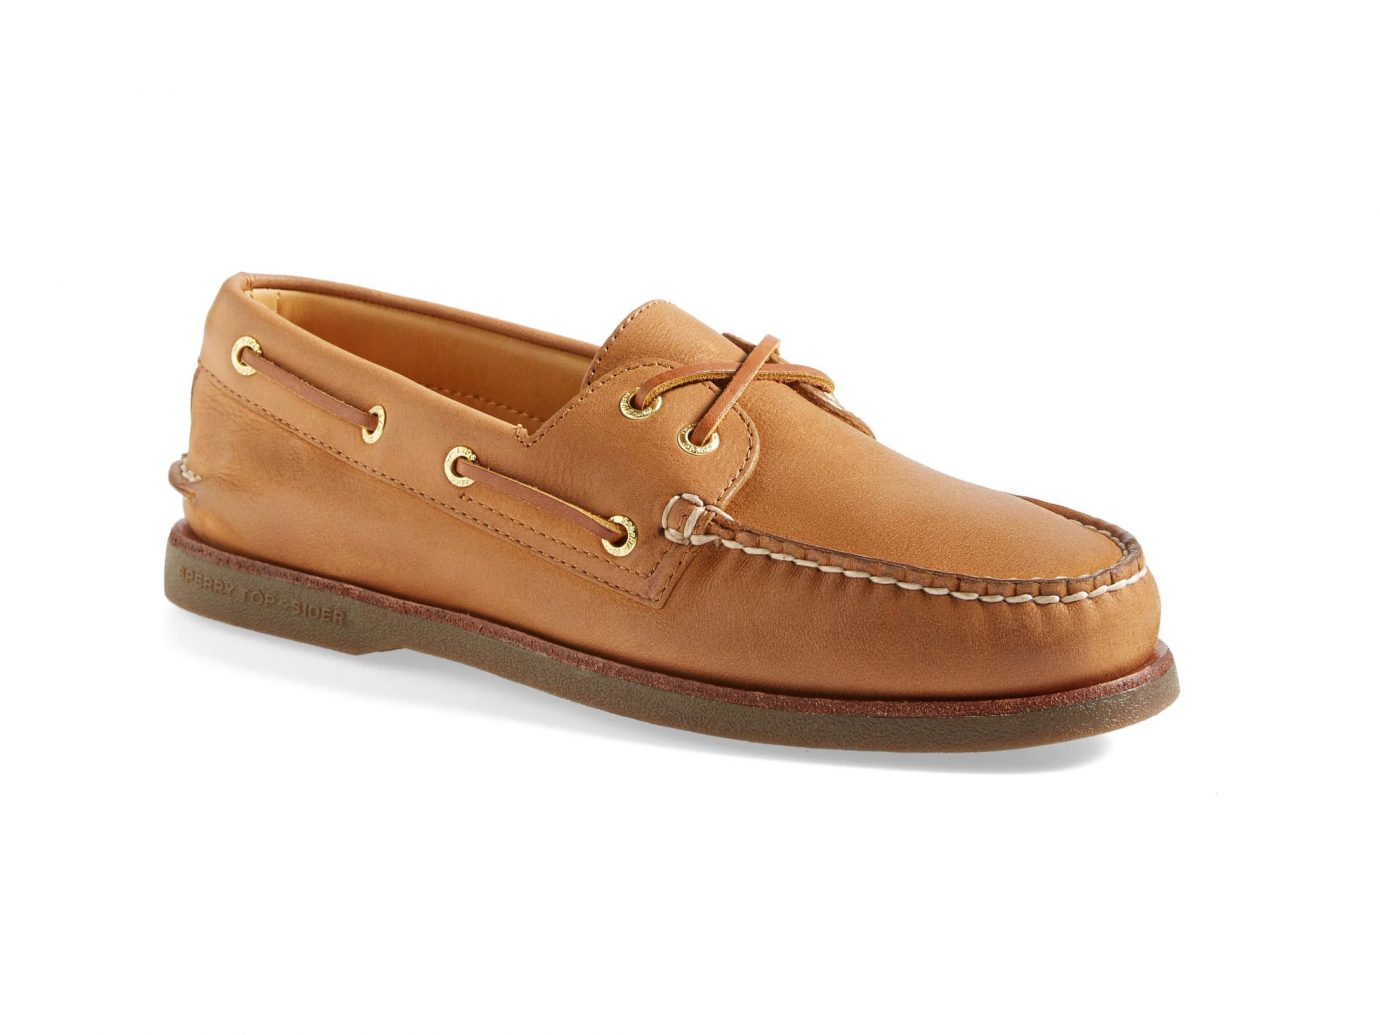 Sperry Gold Cup Original Boat Shoe